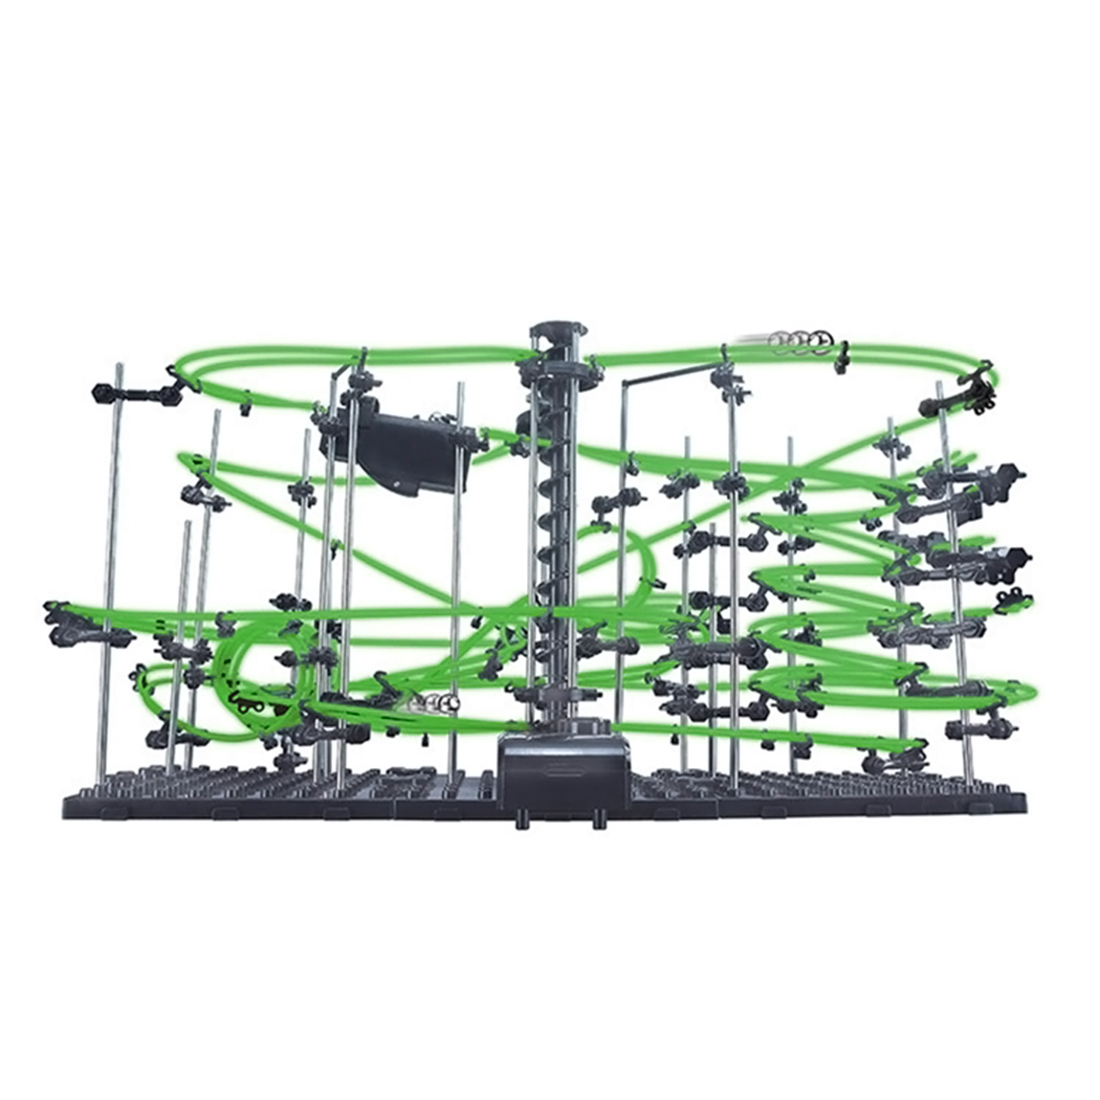 Space Rail Level 4 DIY Educational Toys for Kids Glow In The Dark Roller Coaster With